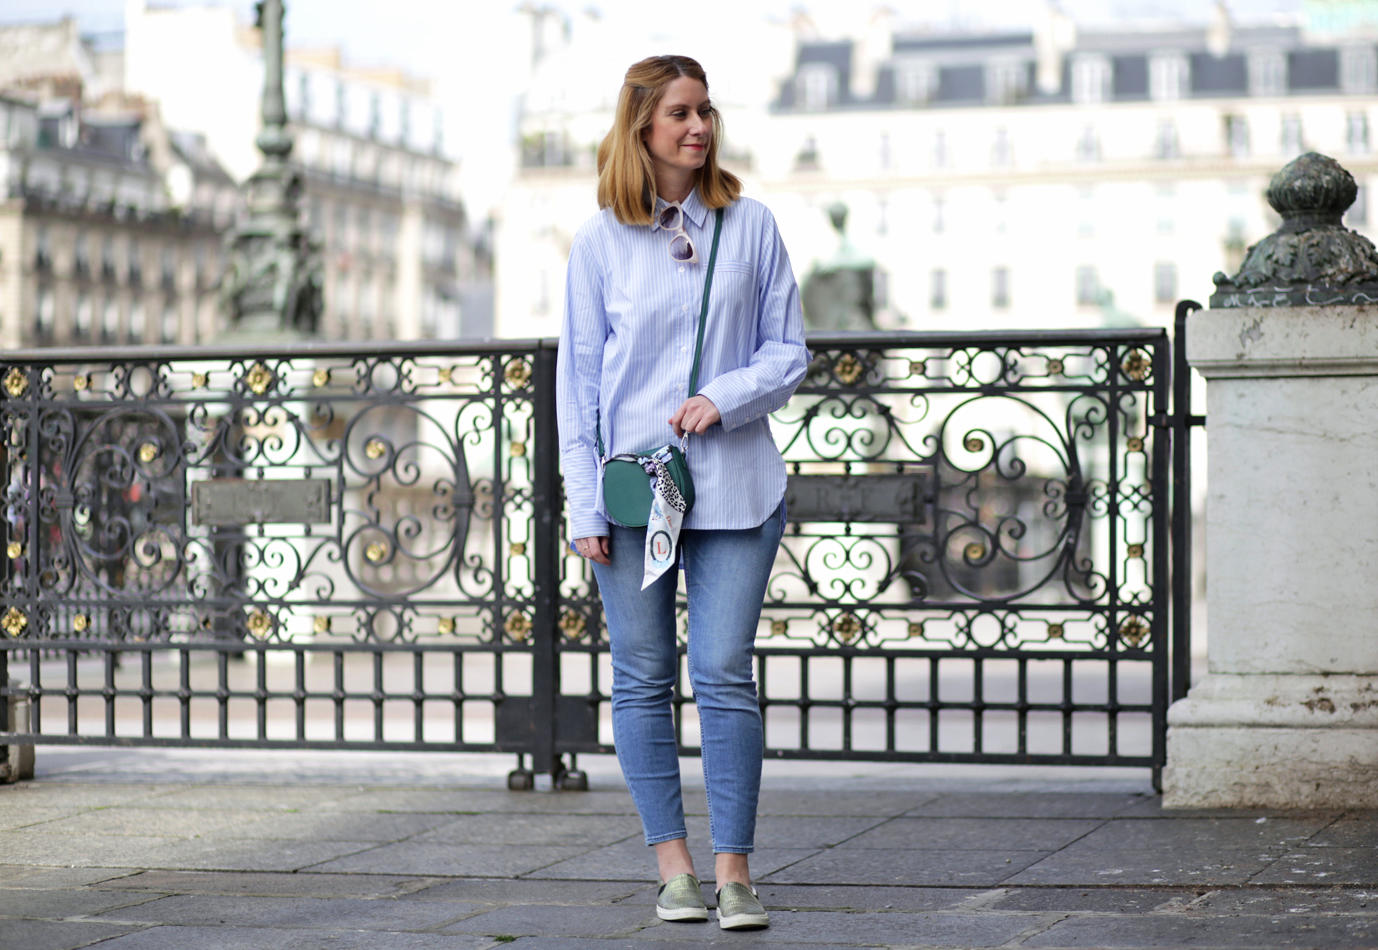 Green and light blue outfit - spring look